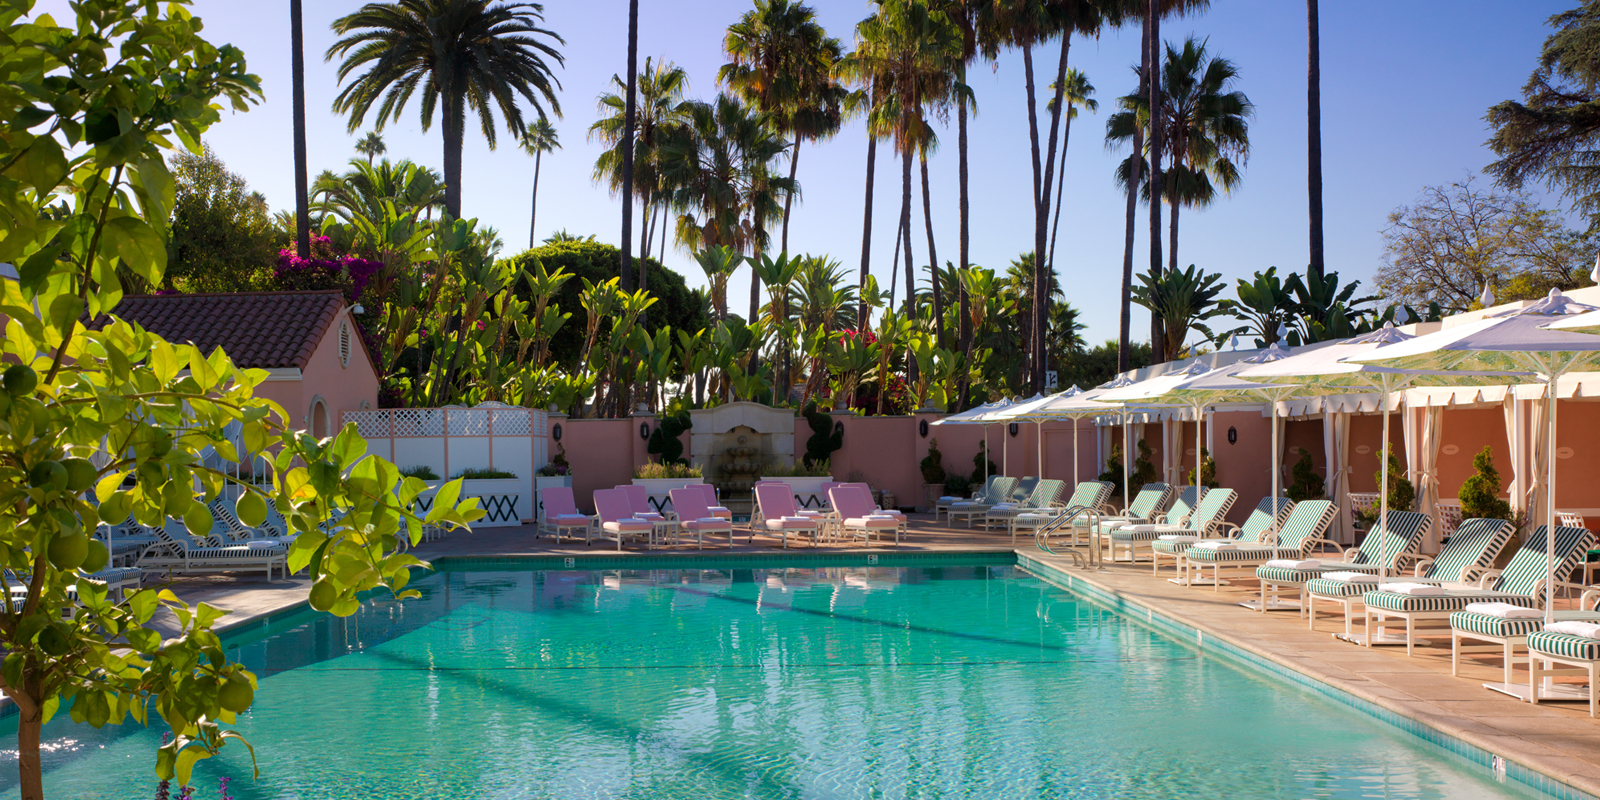 Beverly Hills Hotel Pool via Pinterest